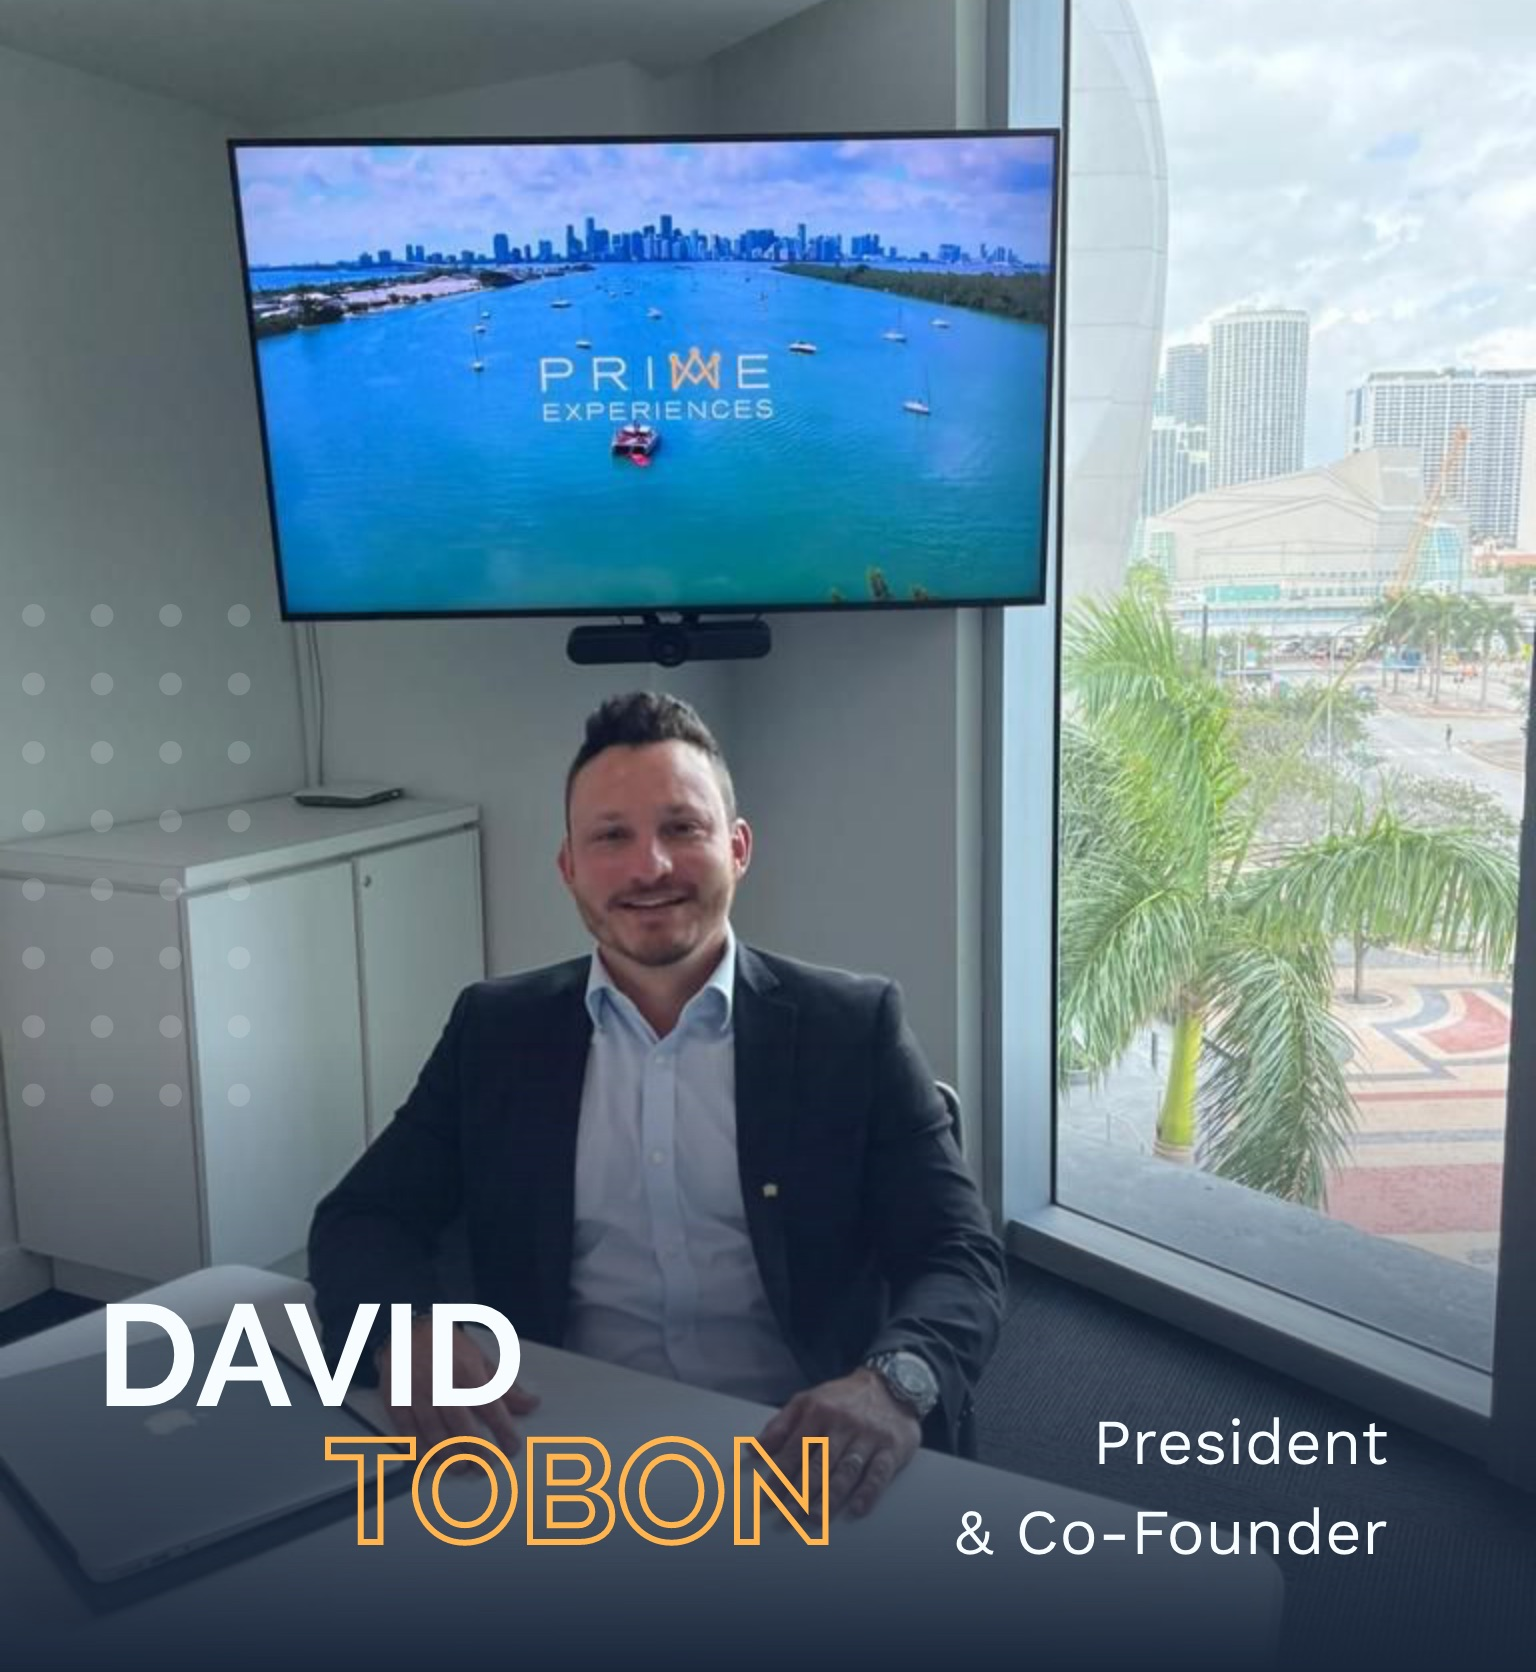 Prime Experiences is set to revolutionize the luxury yacht charter market by accepting Crypto technology as payments in the U.S.